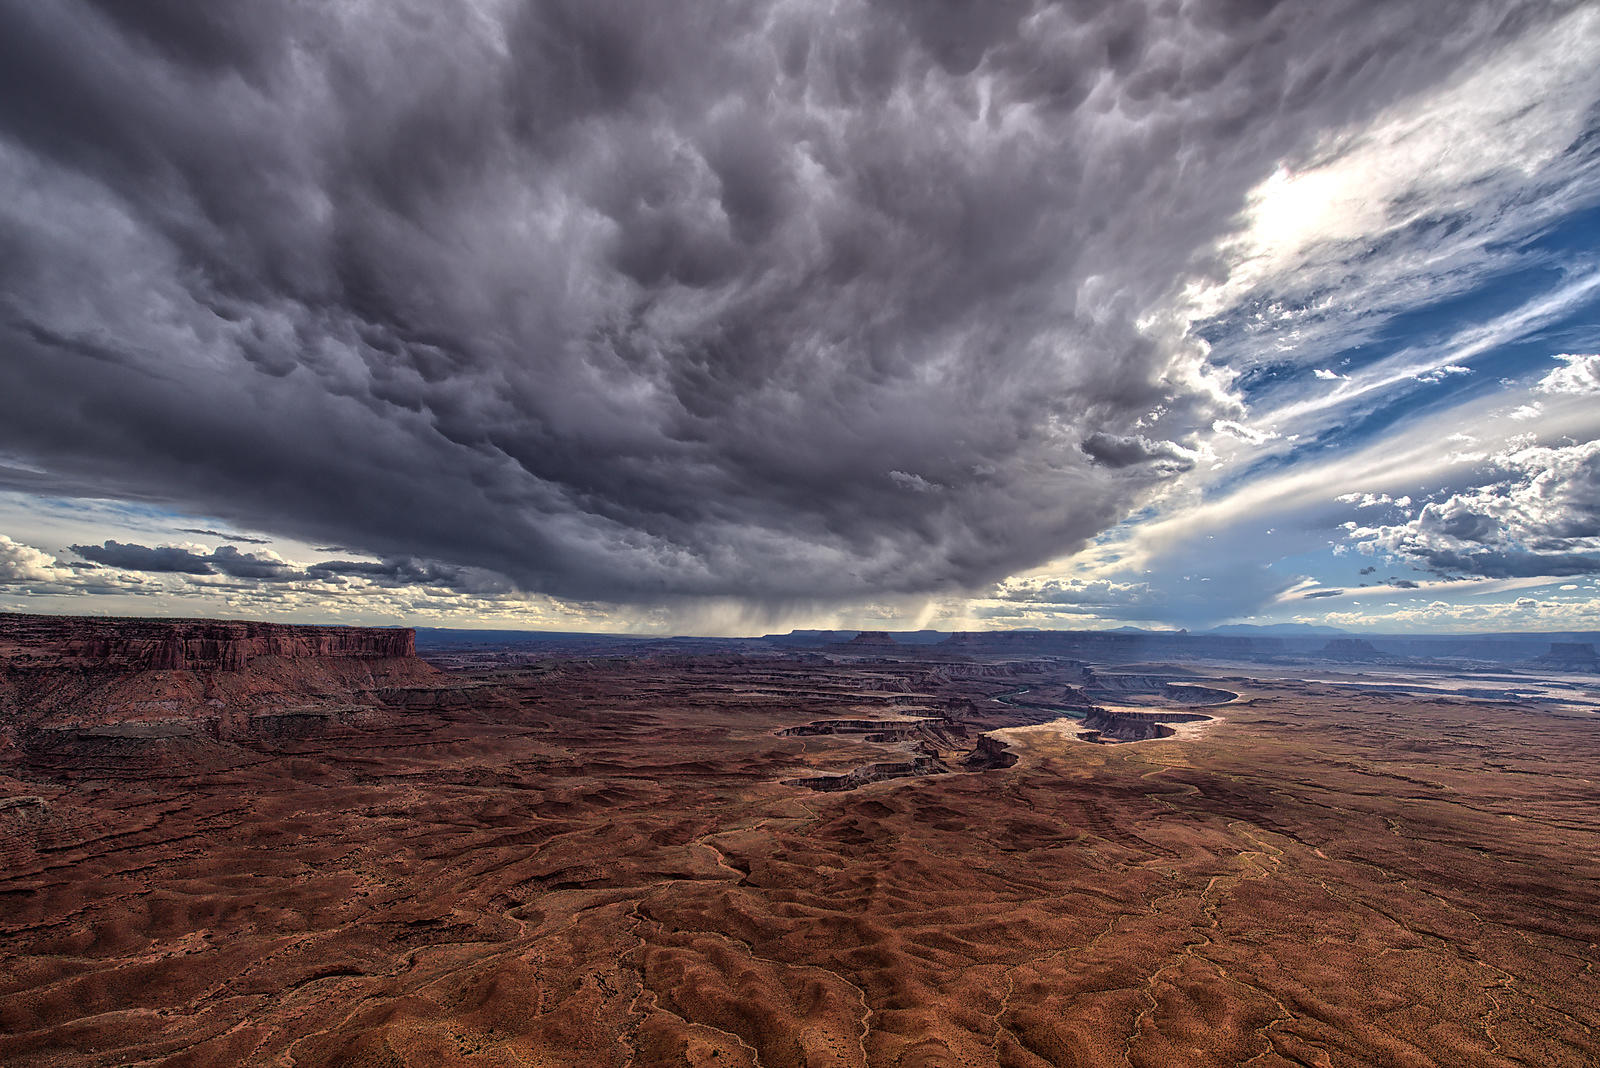 Storm Clouds, Canyonlands National Park